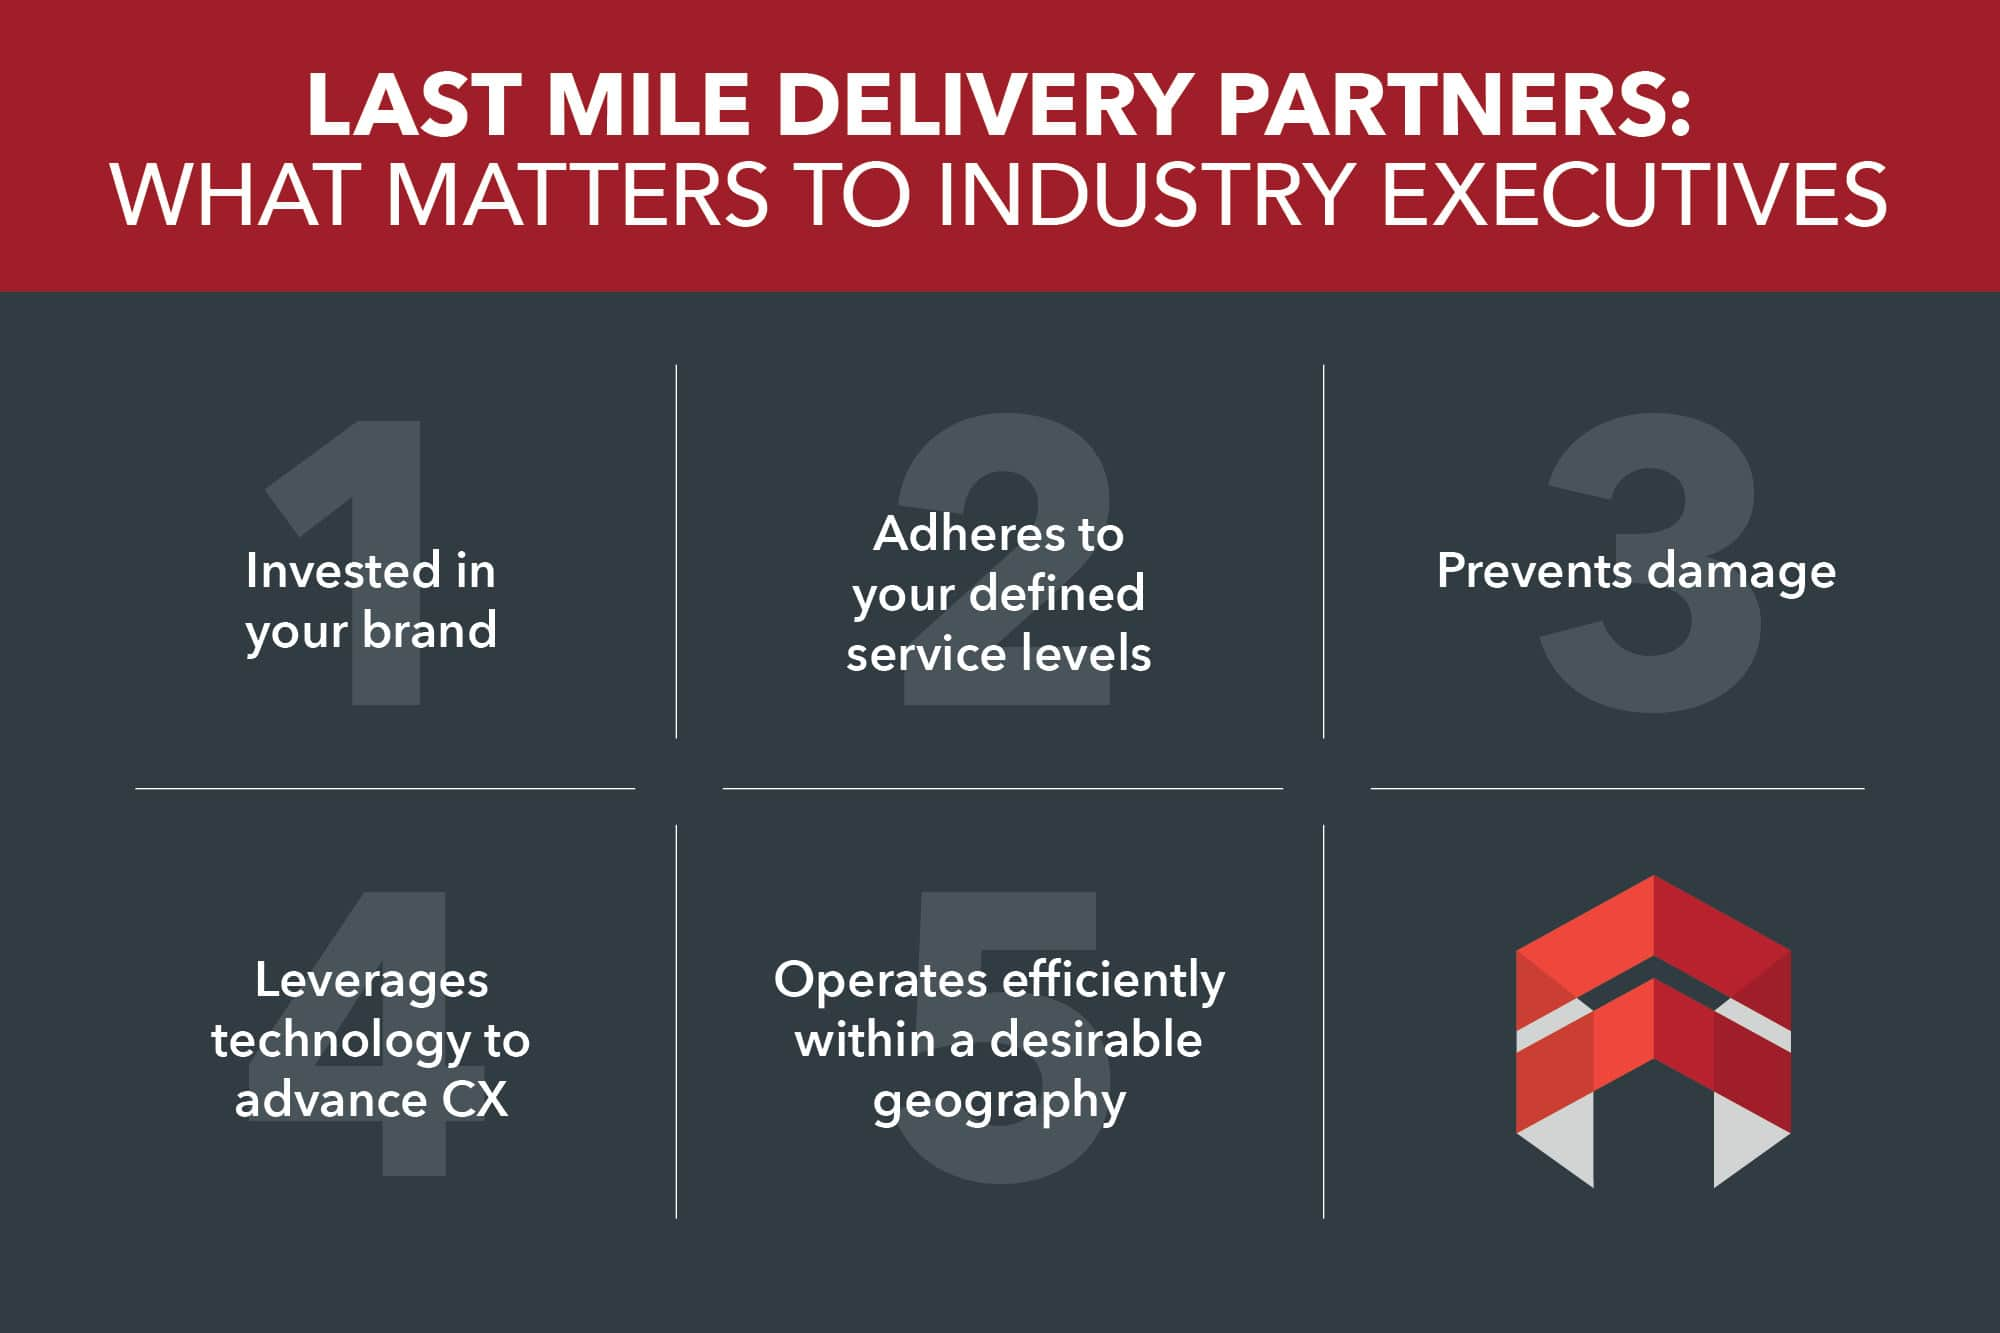 Last Mile Delivery Partners: What Matters to Industry Executives